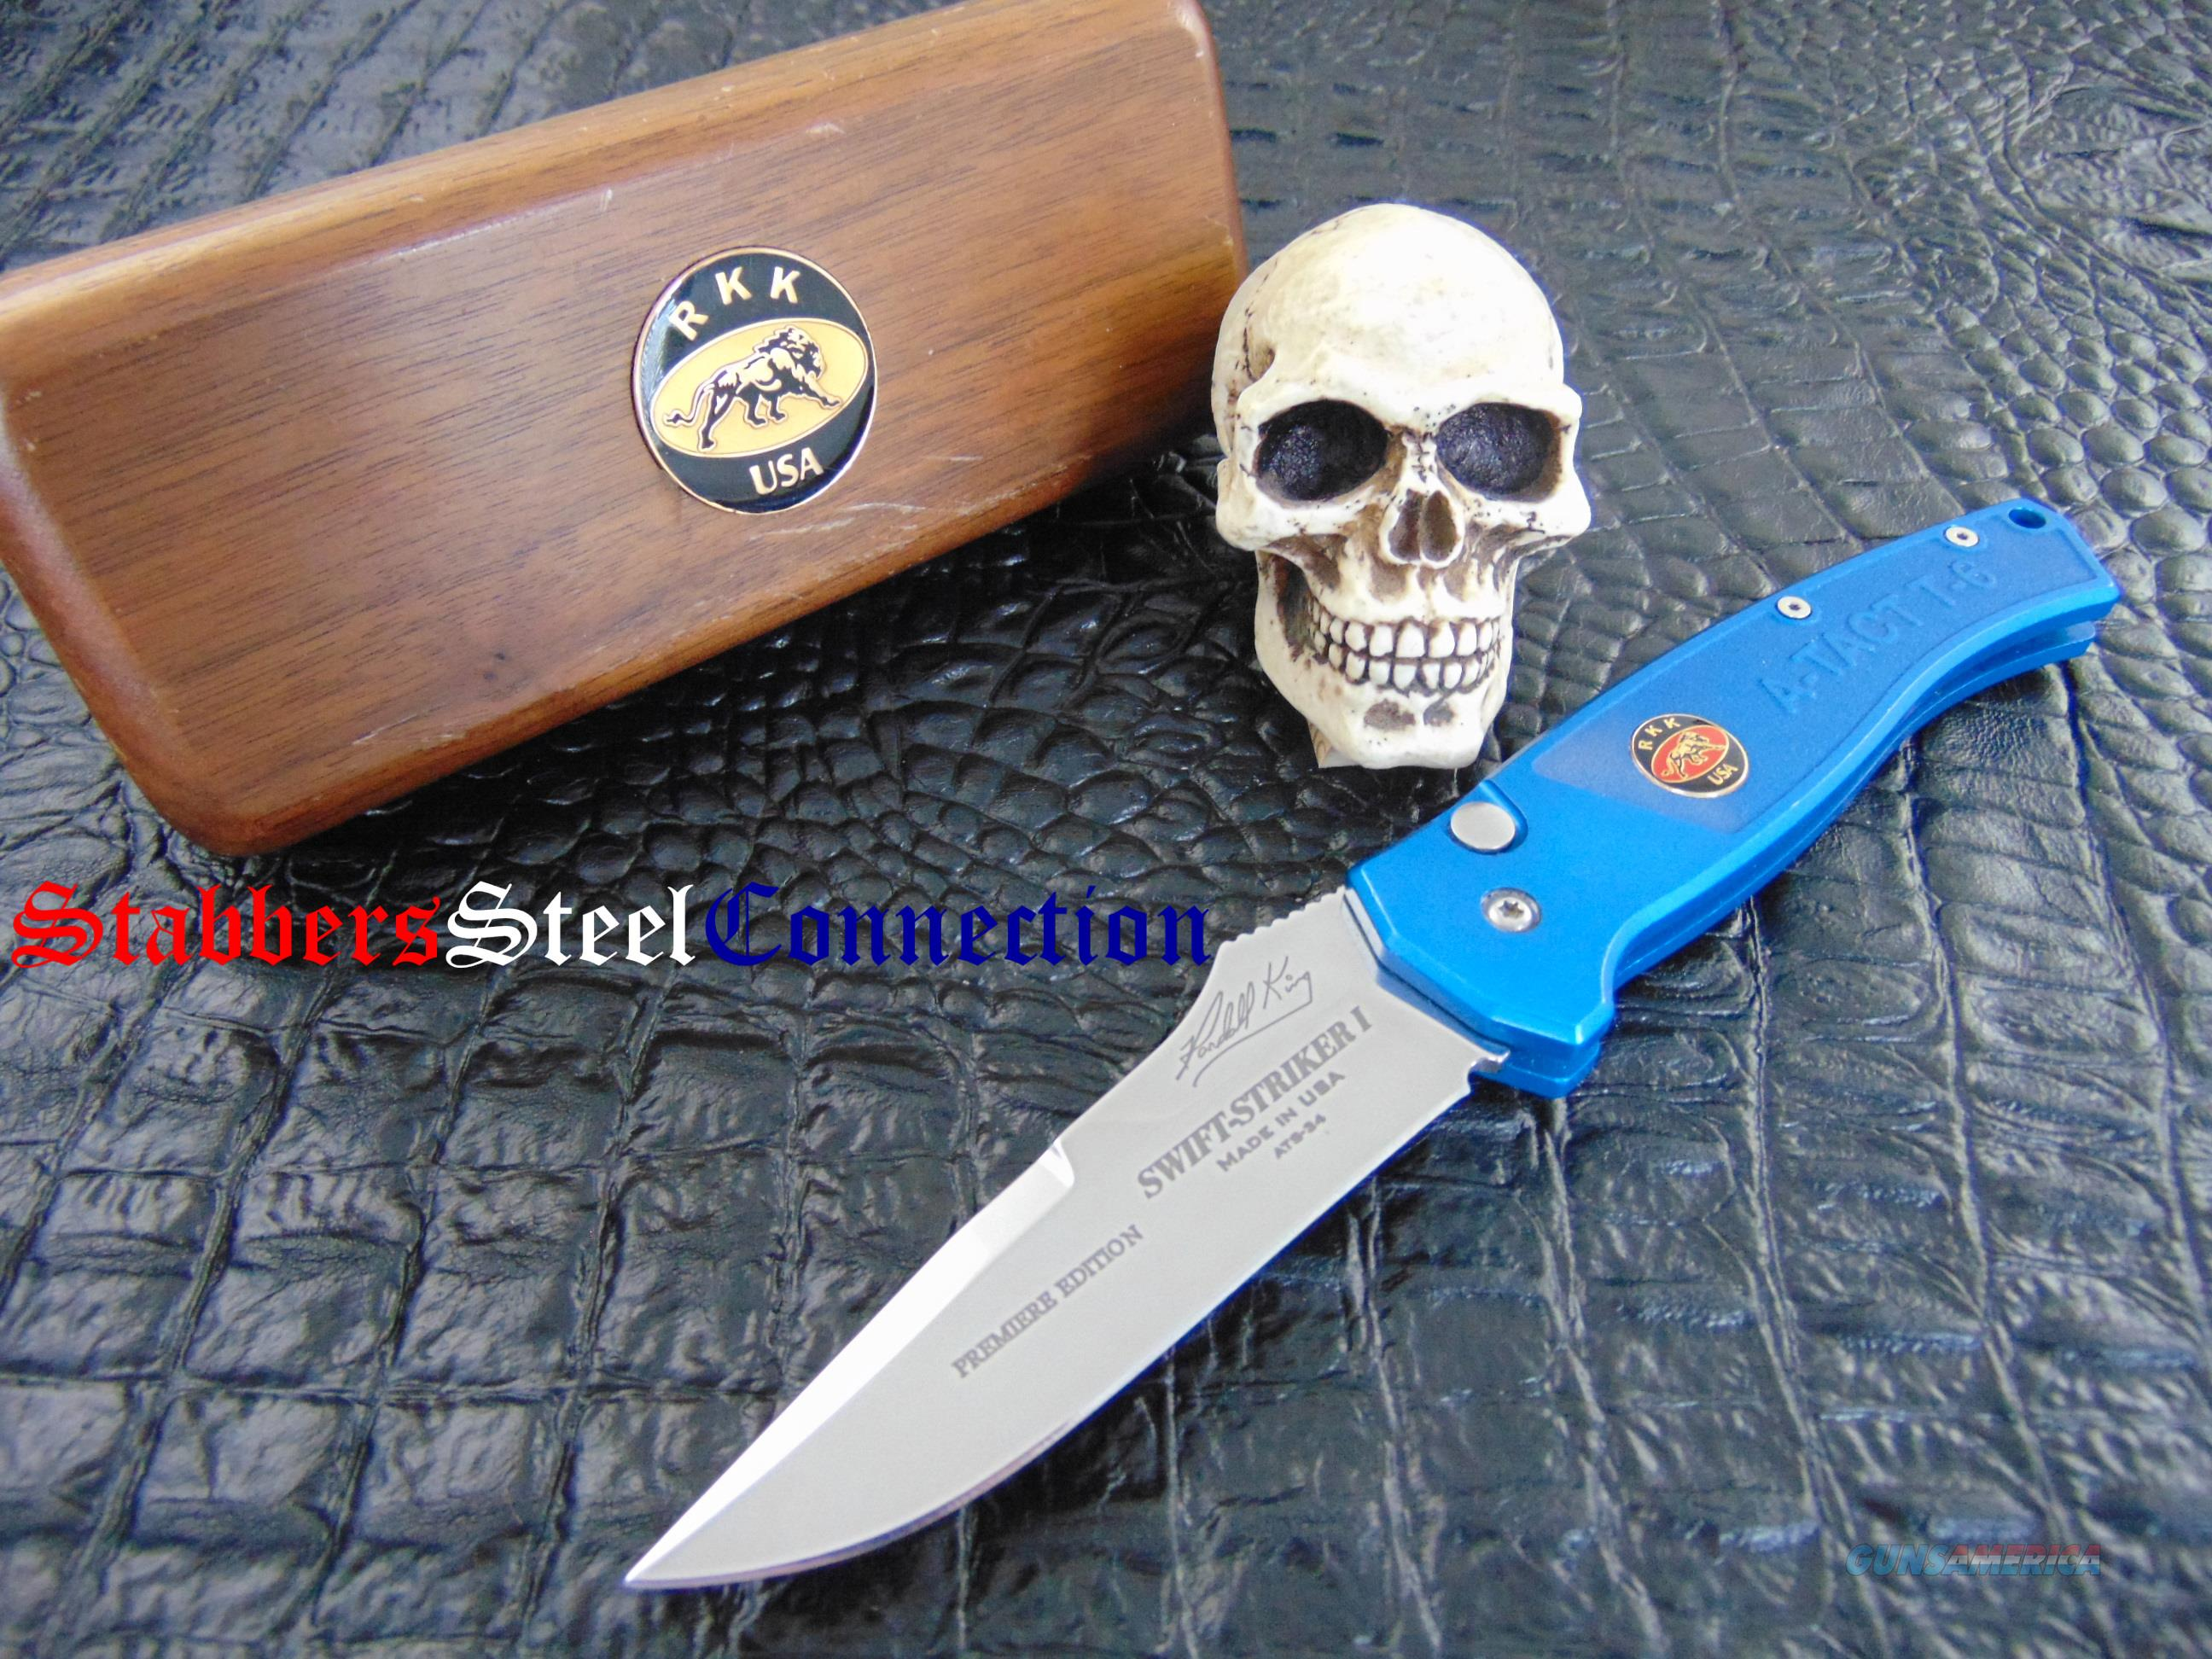 Randall King Knives Swift Striker II Premiere Edition  Non-Guns > Knives/Swords > Knives > Folding Blade > Imported